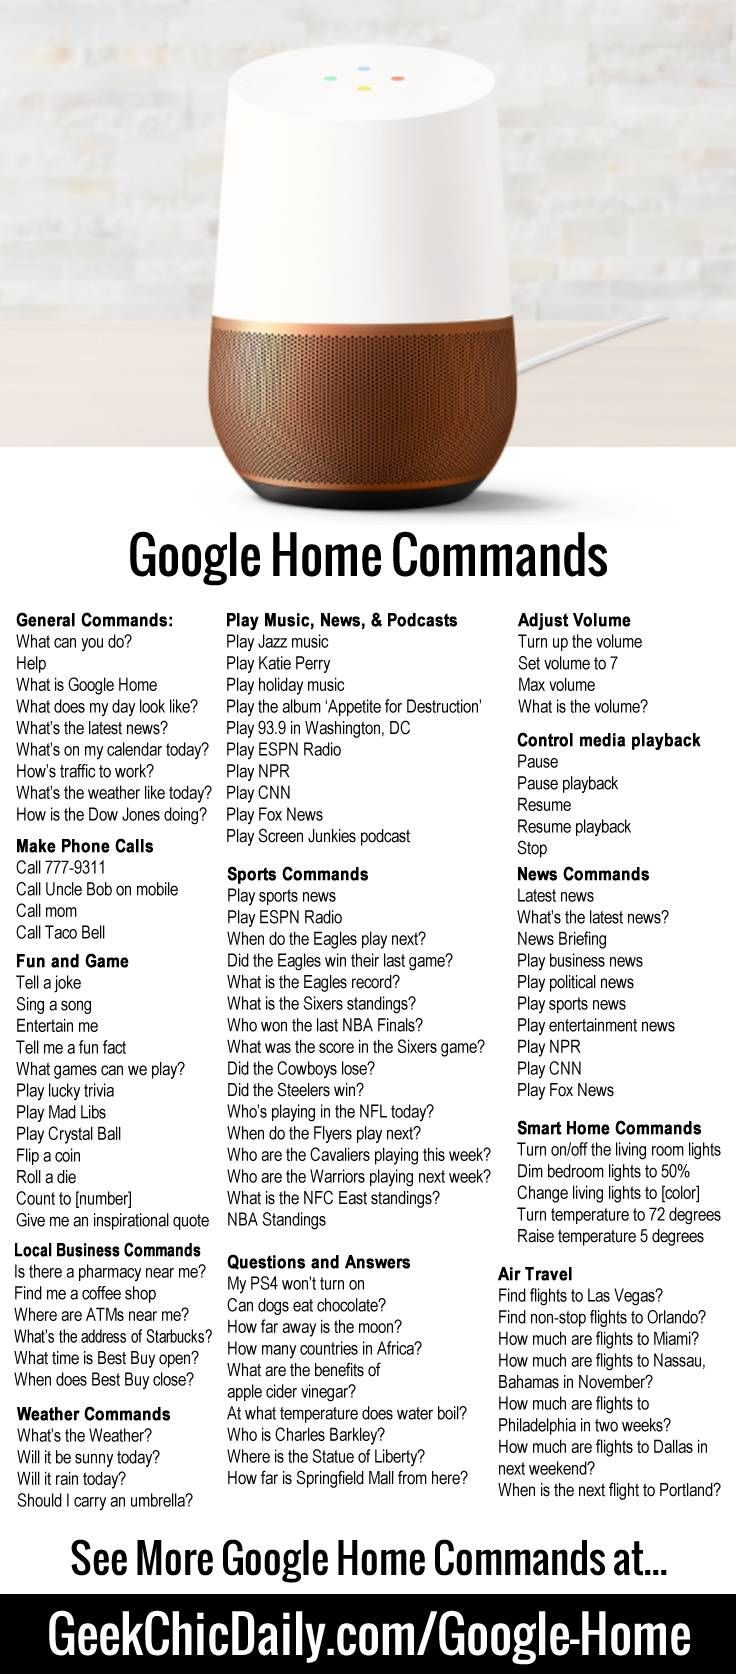 See 200+ Google Home Commands. Learn how to use Google Home to play music. Control smart home products, lights, cameras, power plugs, switches, etc.